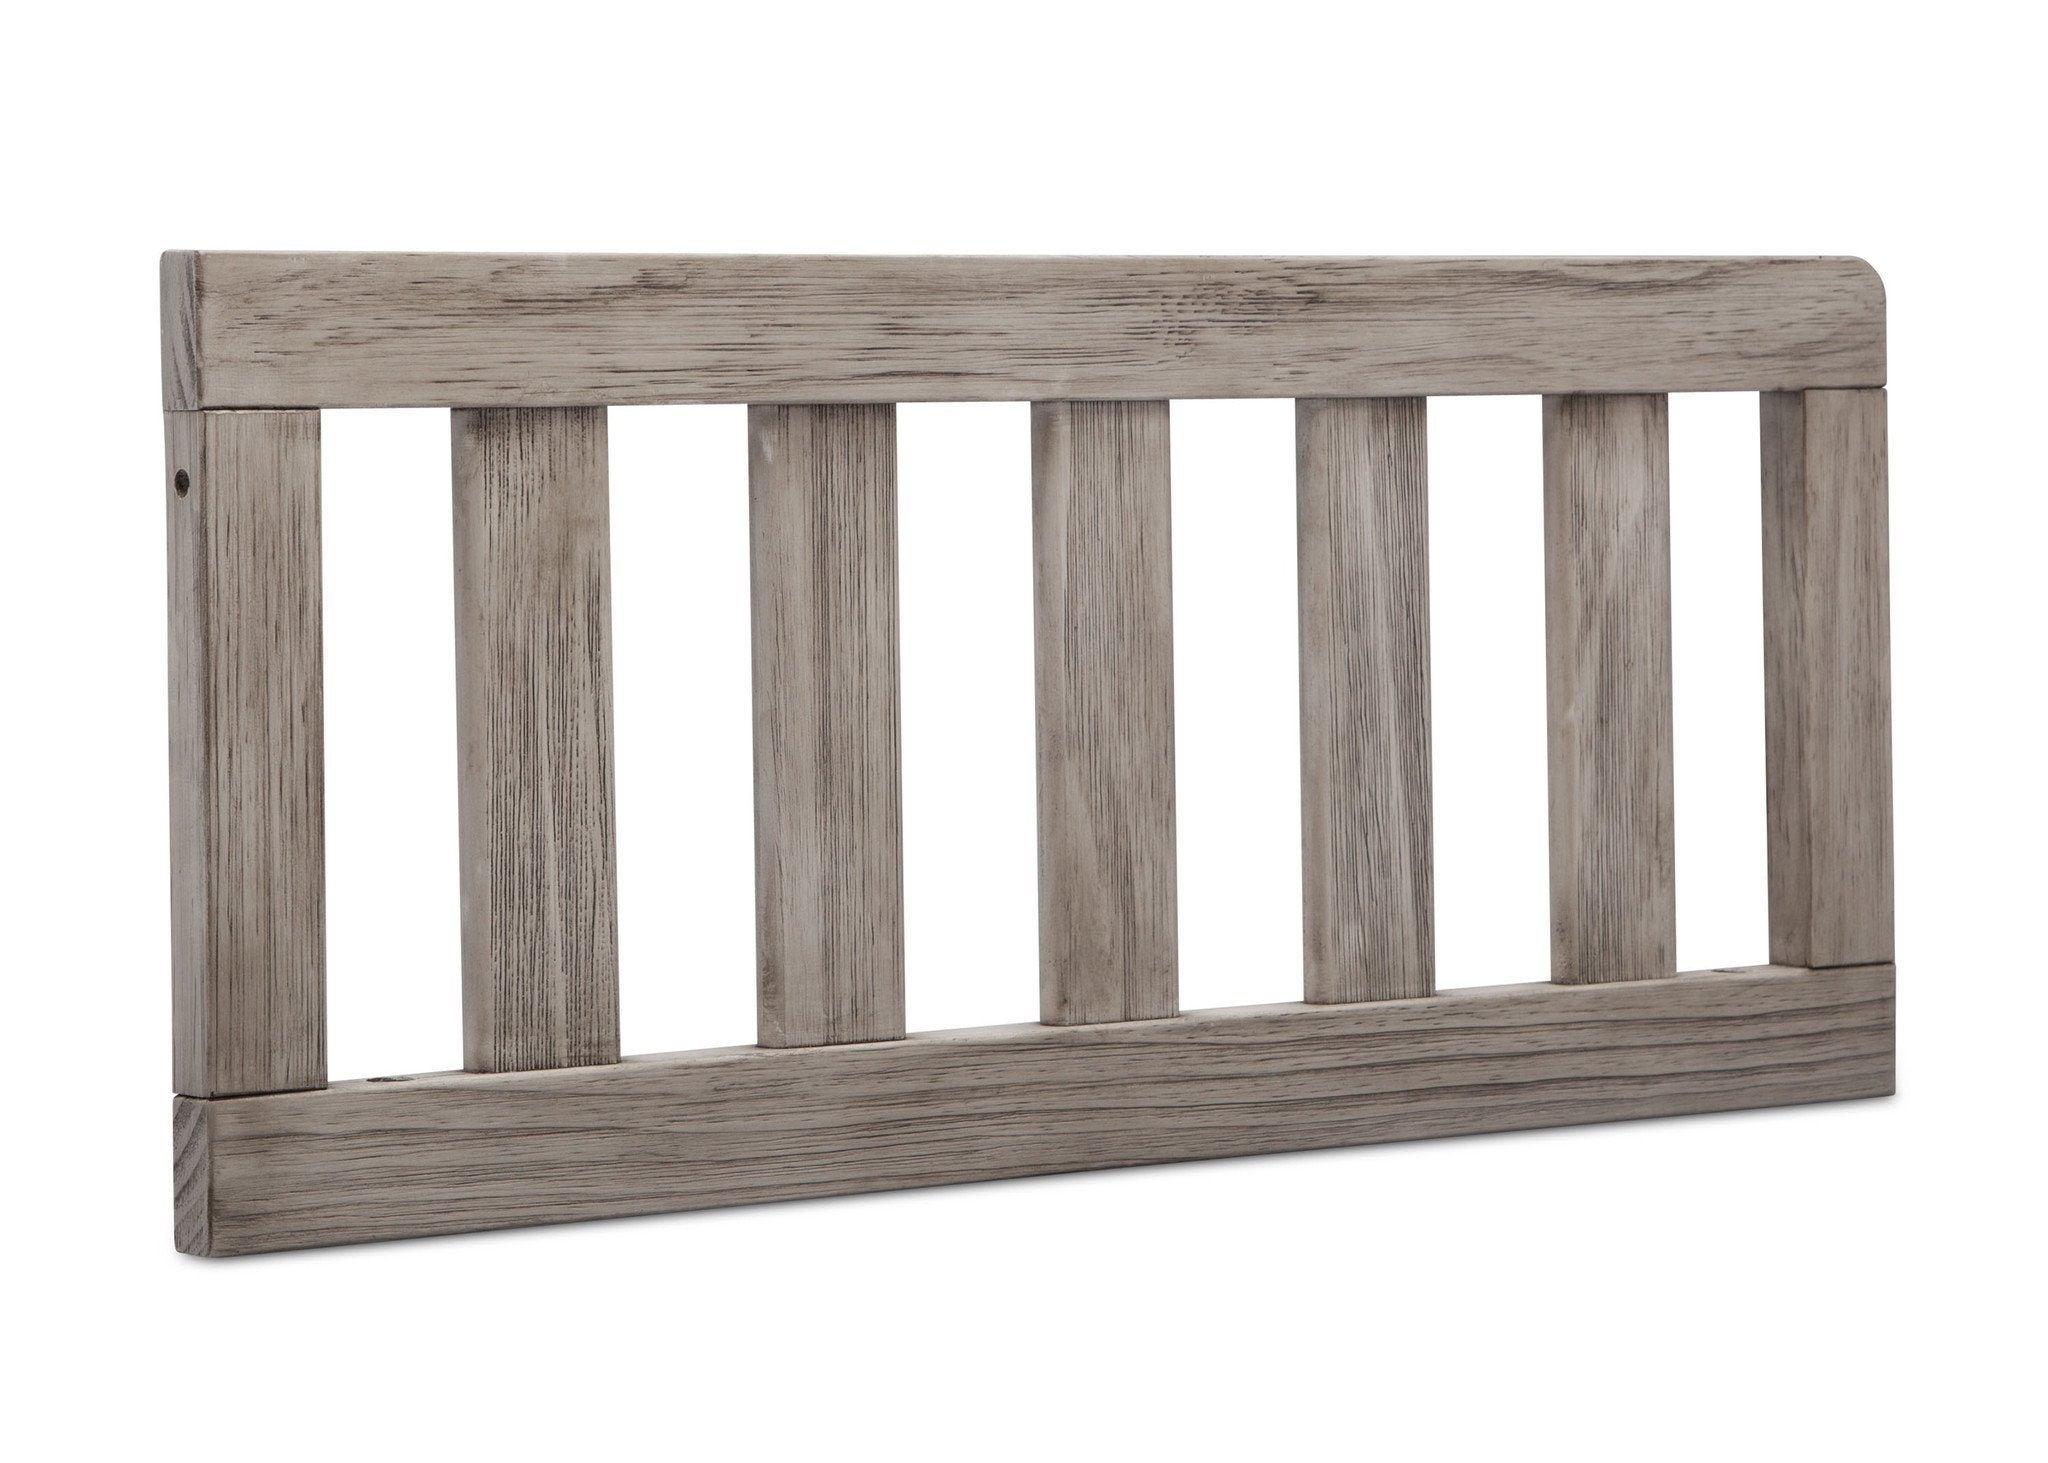 Simmons Kids Rustic White (119) Toddler Guardrail (180129), Angled View b1b